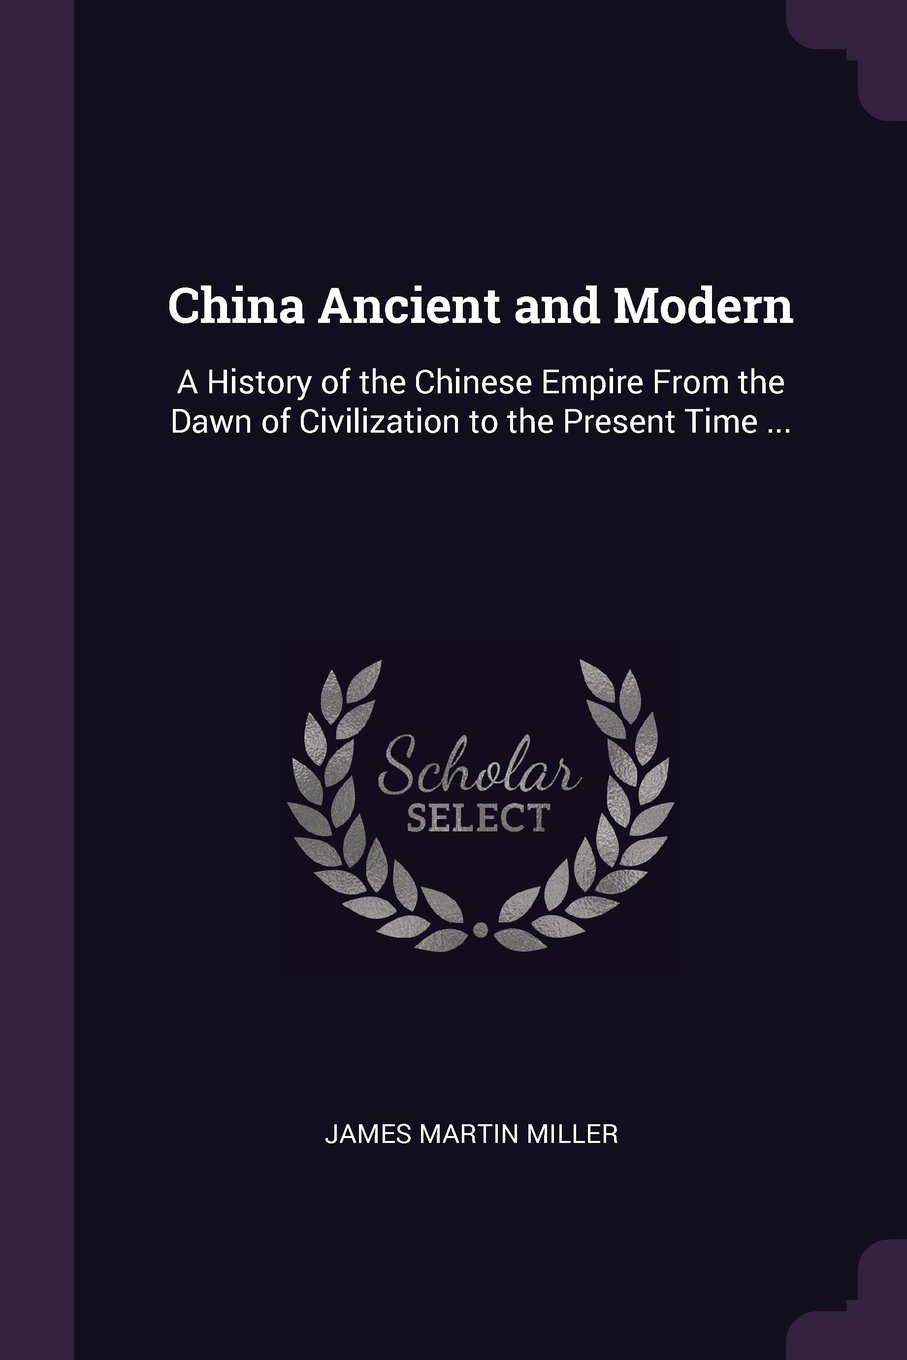 Download China Ancient and Modern: A History of the Chinese Empire From the Dawn of Civilization to the Present Time ... pdf